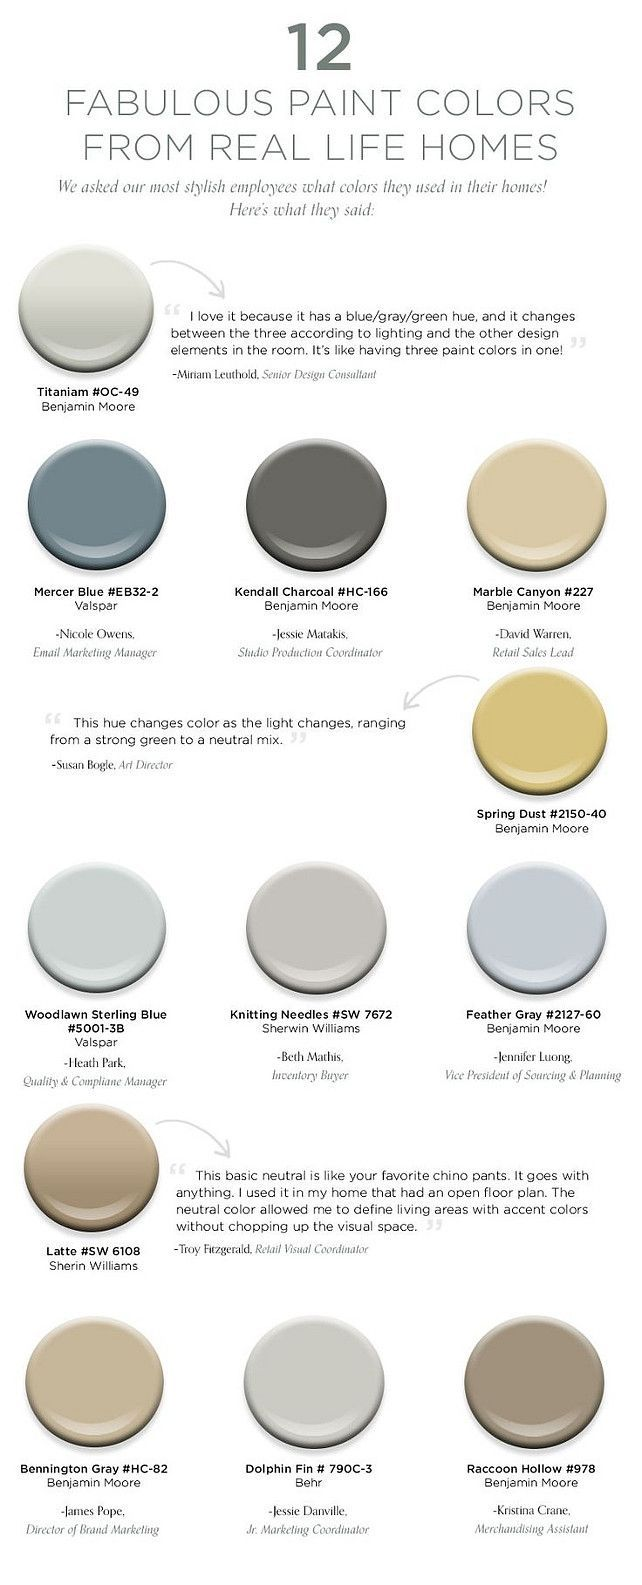 Paint Color for Real Homes!: